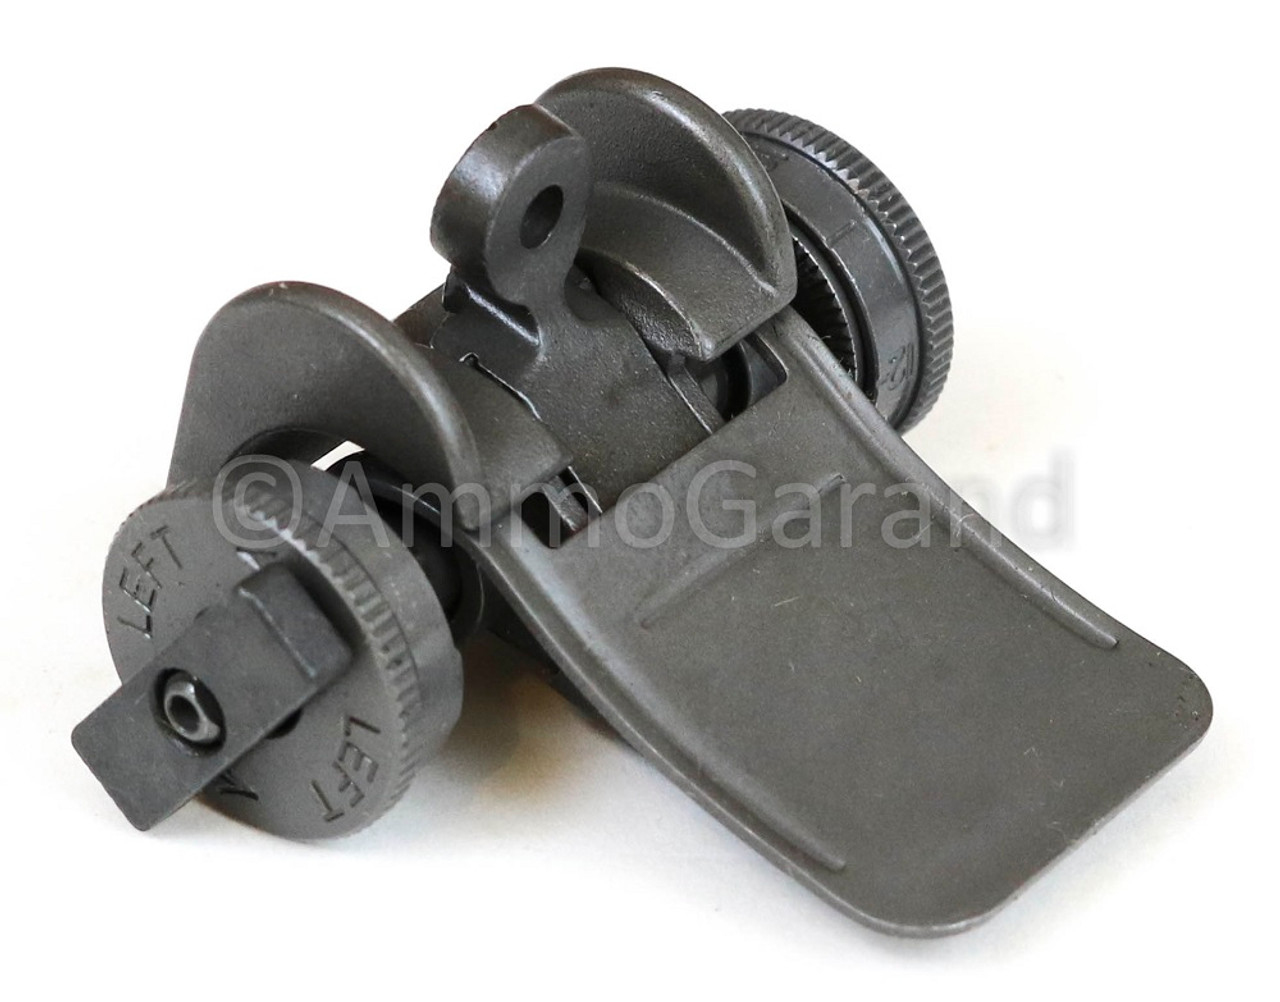 M1 Garand  Rear Sight Assembly WWII Lock Bar Complete Type III <br>Winchester WRA <br>1944 - 1945 use<br> - NEW - Grey